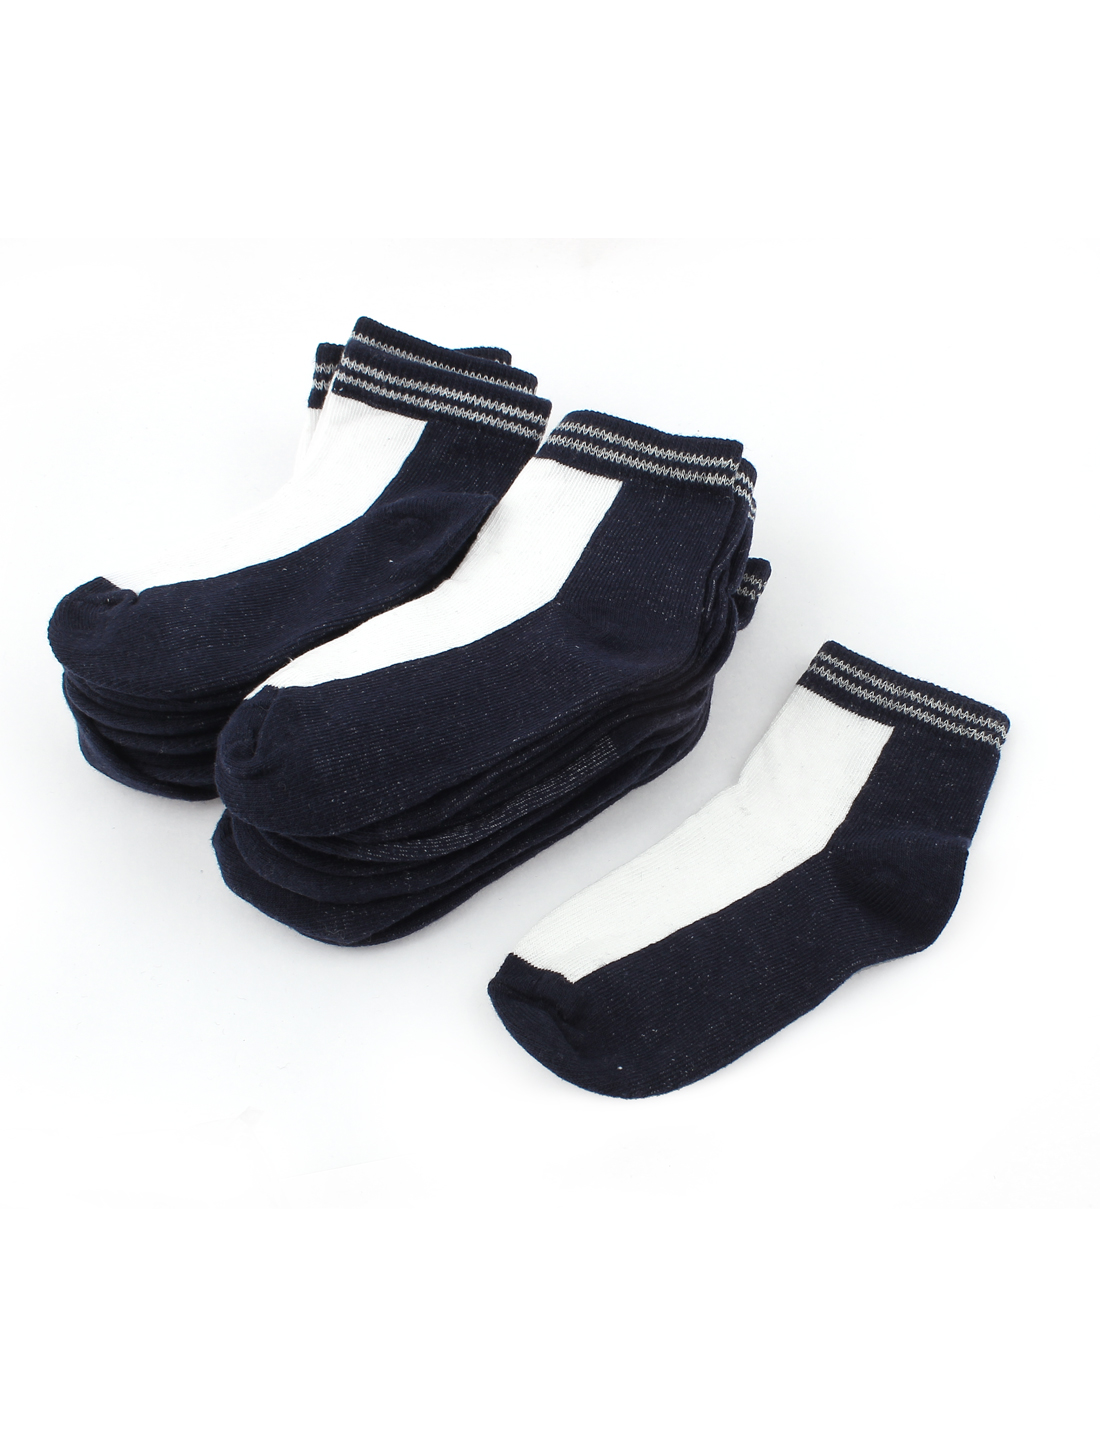 10Pairs Casual Dark Blue White Stretch Cuff Ankle Short Low Cut Socks Sockens for Boys